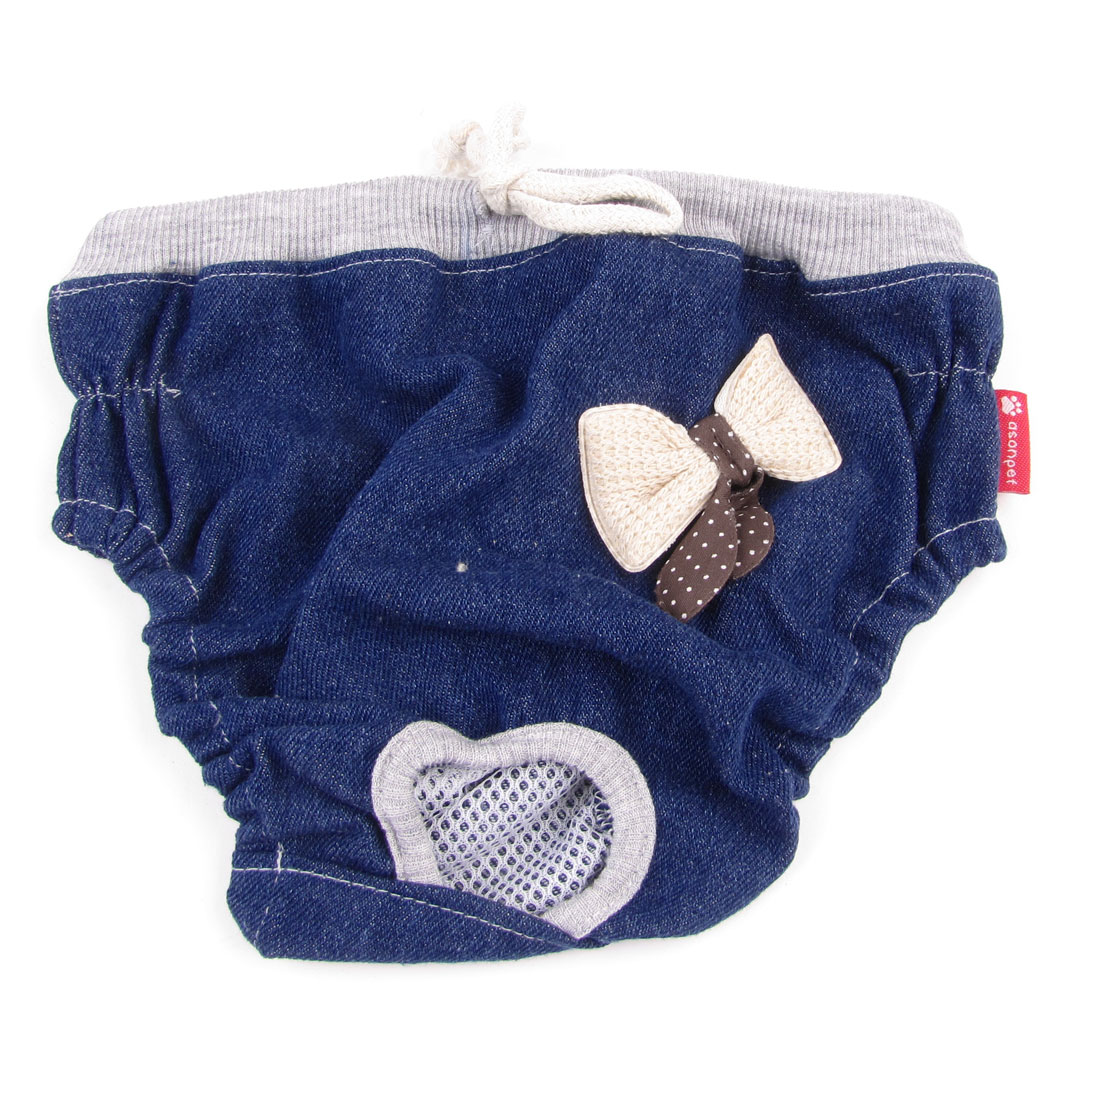 Pet Dog Doggie Bowtie Detail Stretchy Waist Diaper Pants Underwear Blue Size L